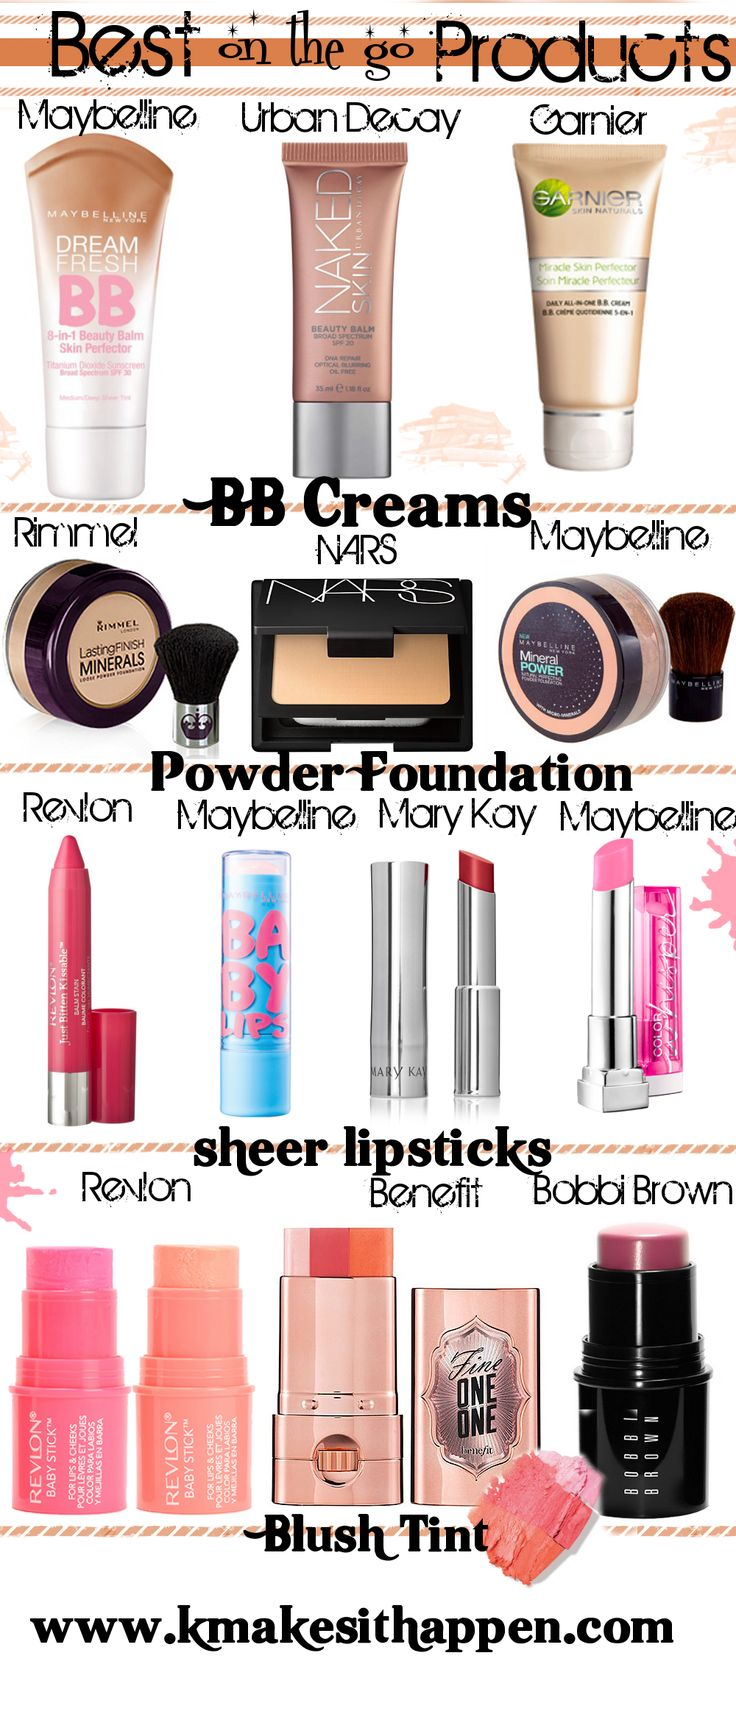 The best on-the-go products!